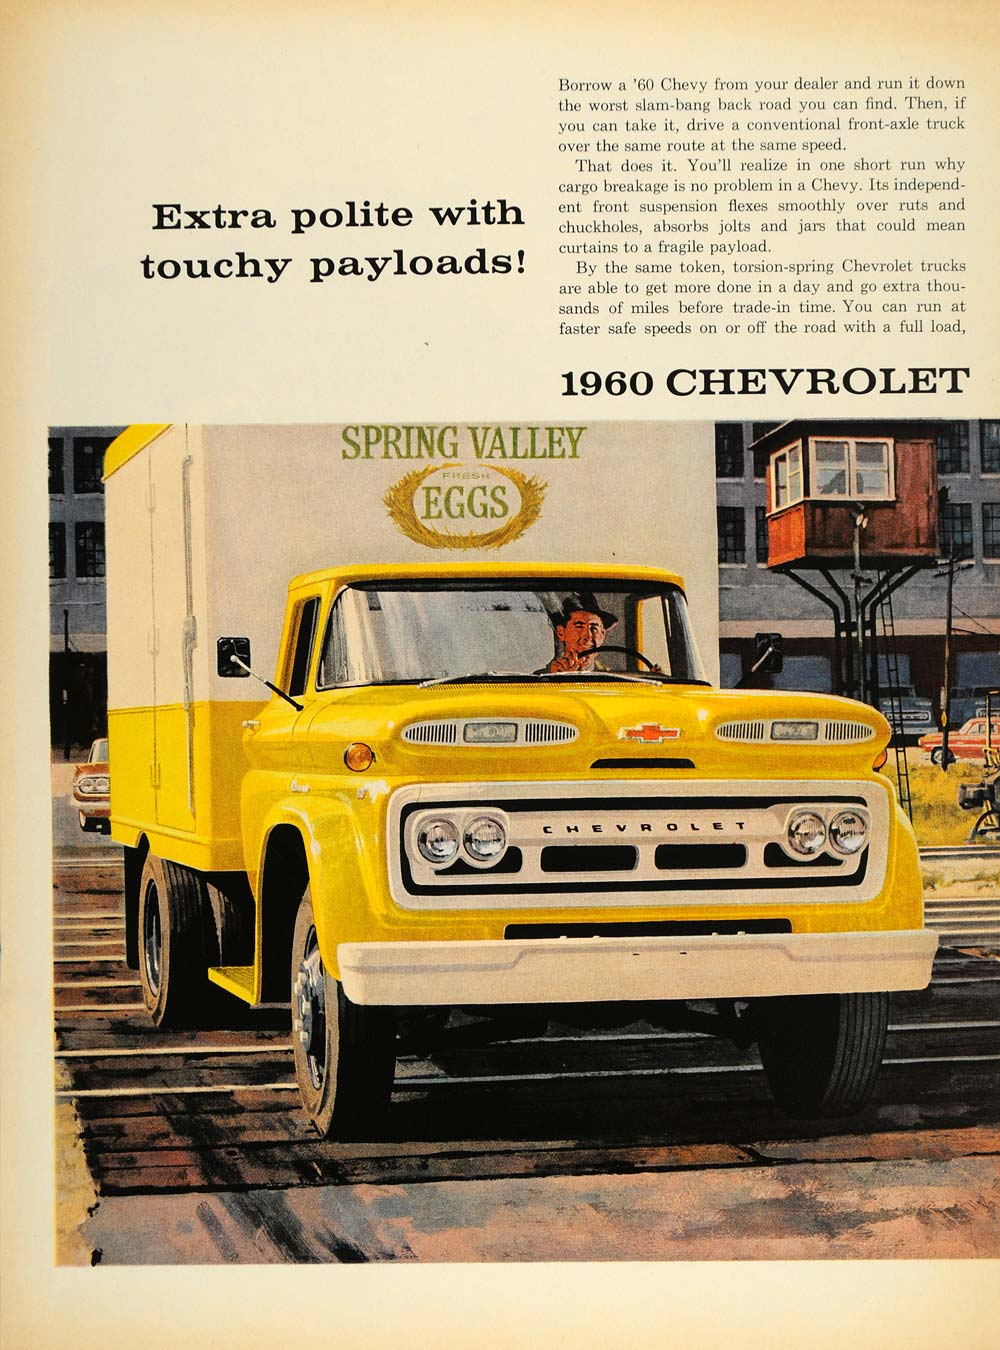 1960 Ad Chevrolet Chevy Truck Torsion Rear Springs V8 - ORIGINAL MIX8